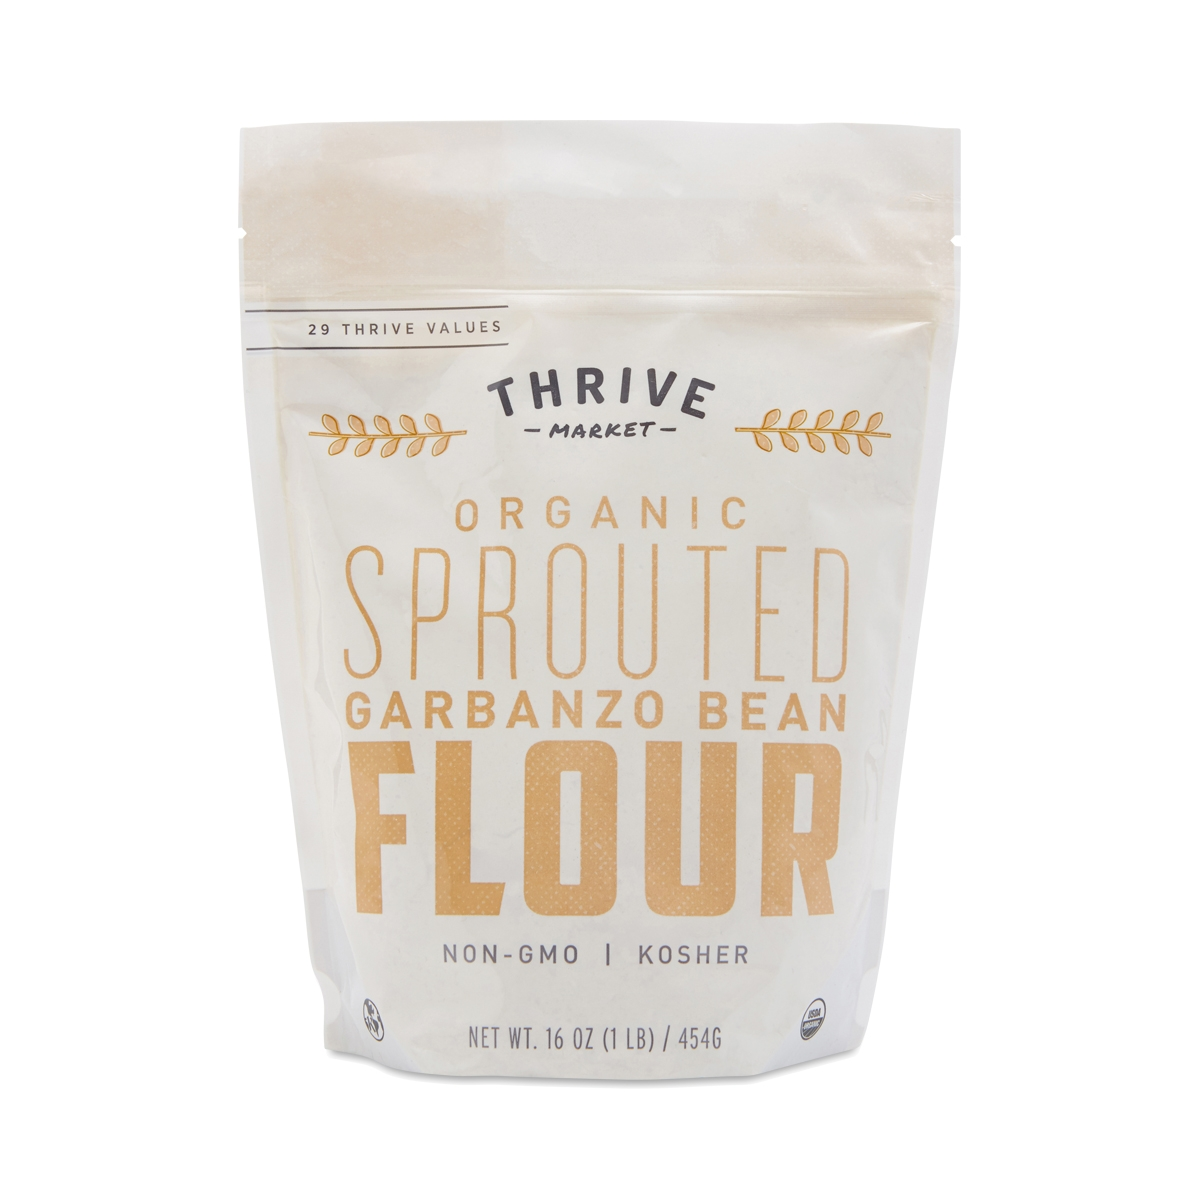 Organic-Sprouted-Garbanzo-Bean-Chickpea-Flour